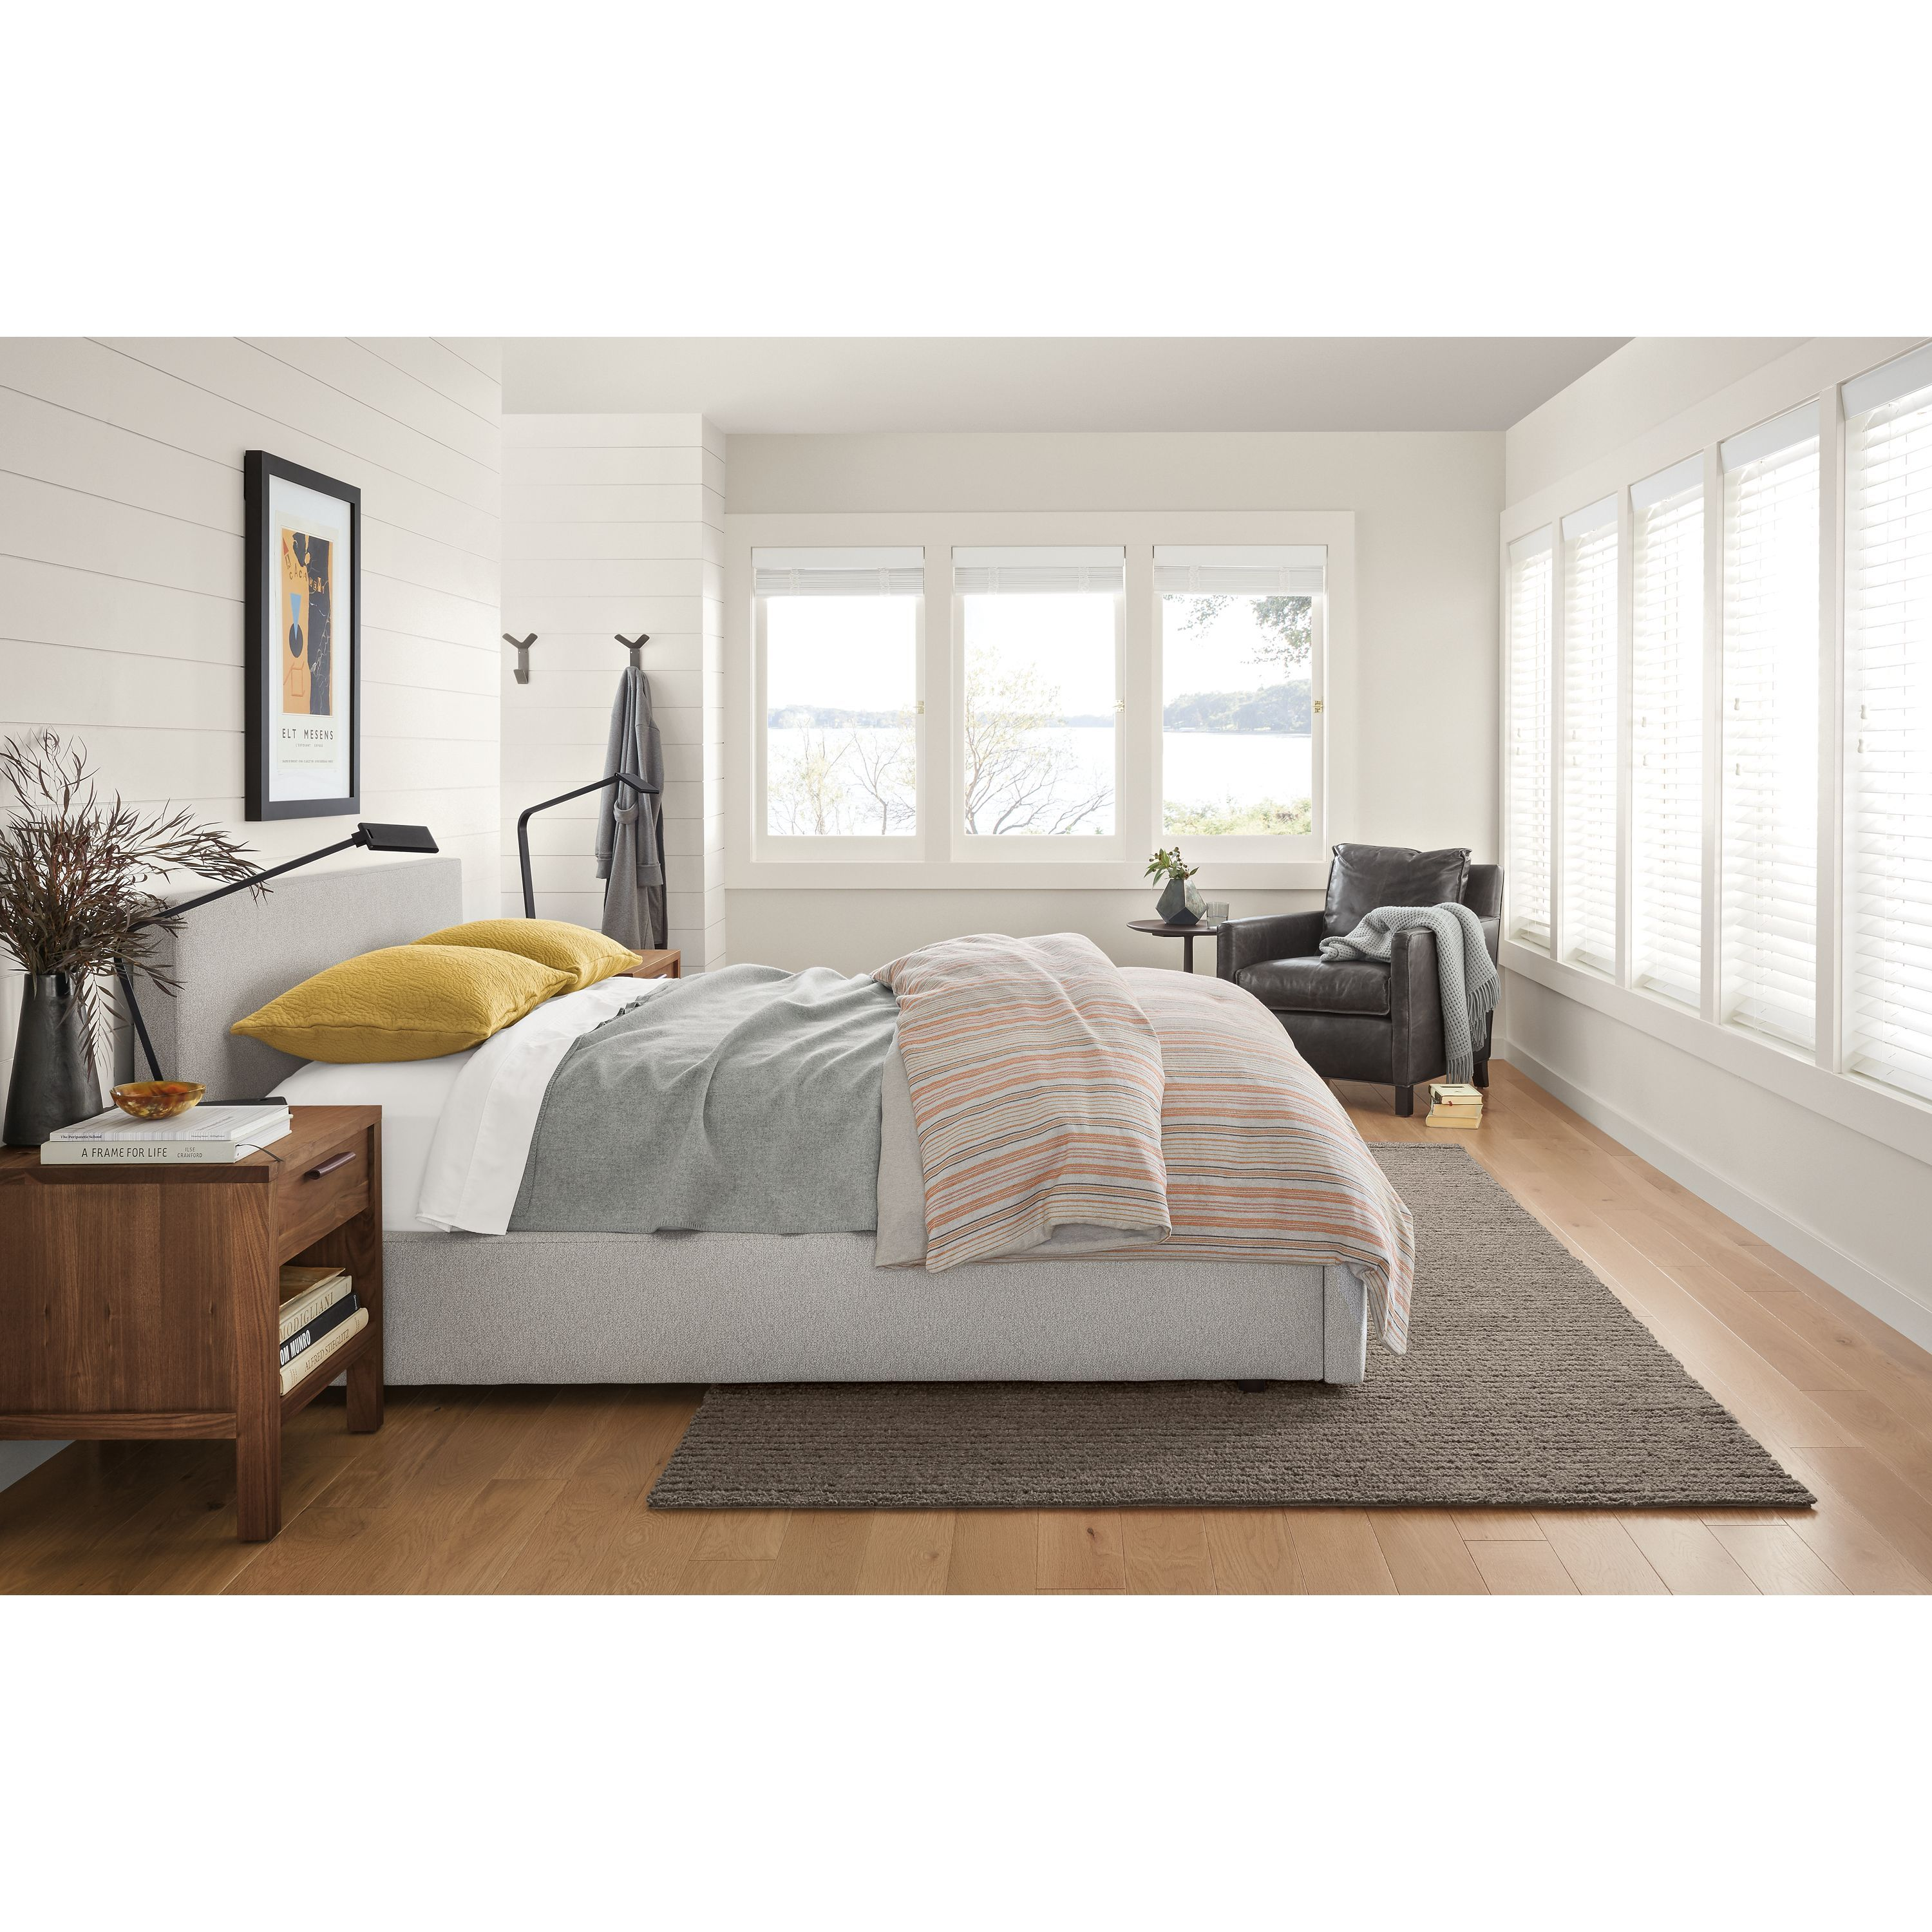 Room u board wyatt bed with storage drawer in products